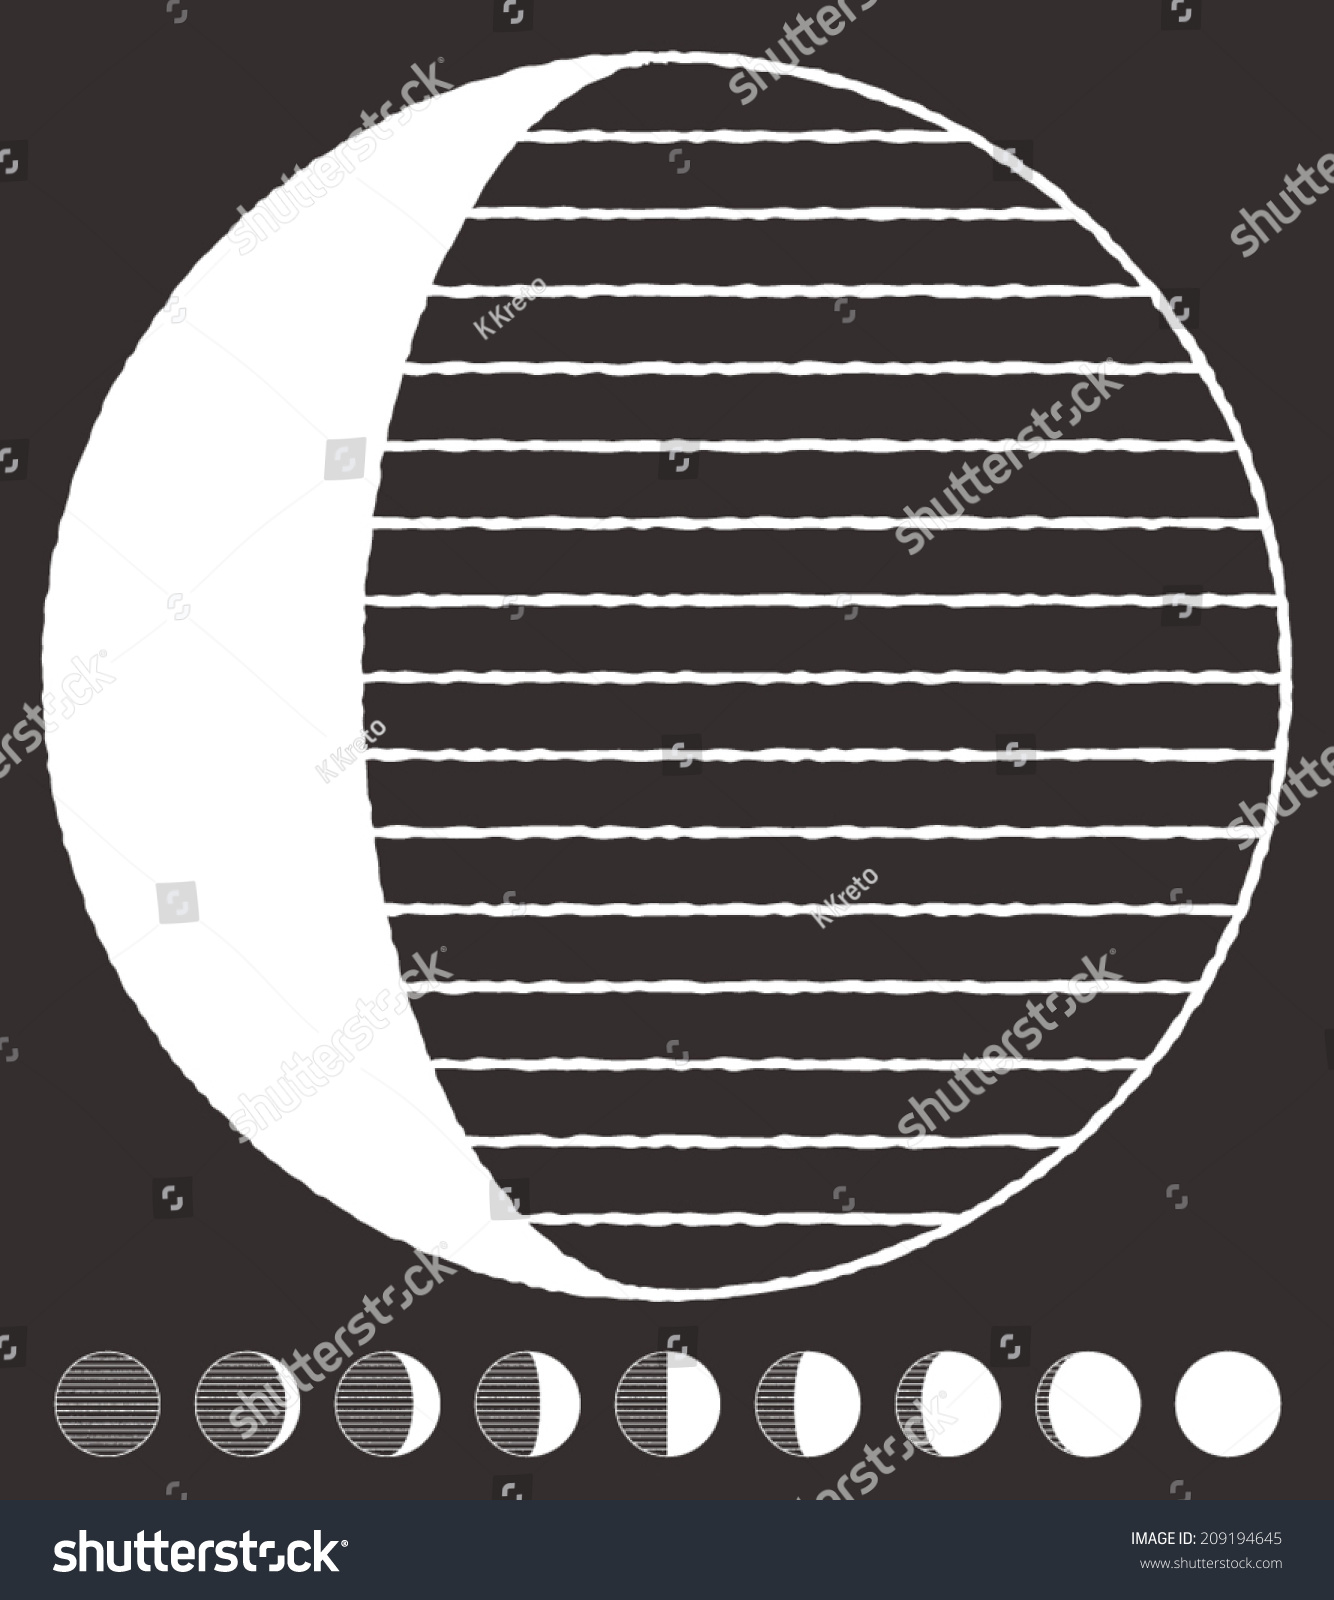 Stylized Moon Phases Design With Noisy Contours Vector Graphics Set Logo Template